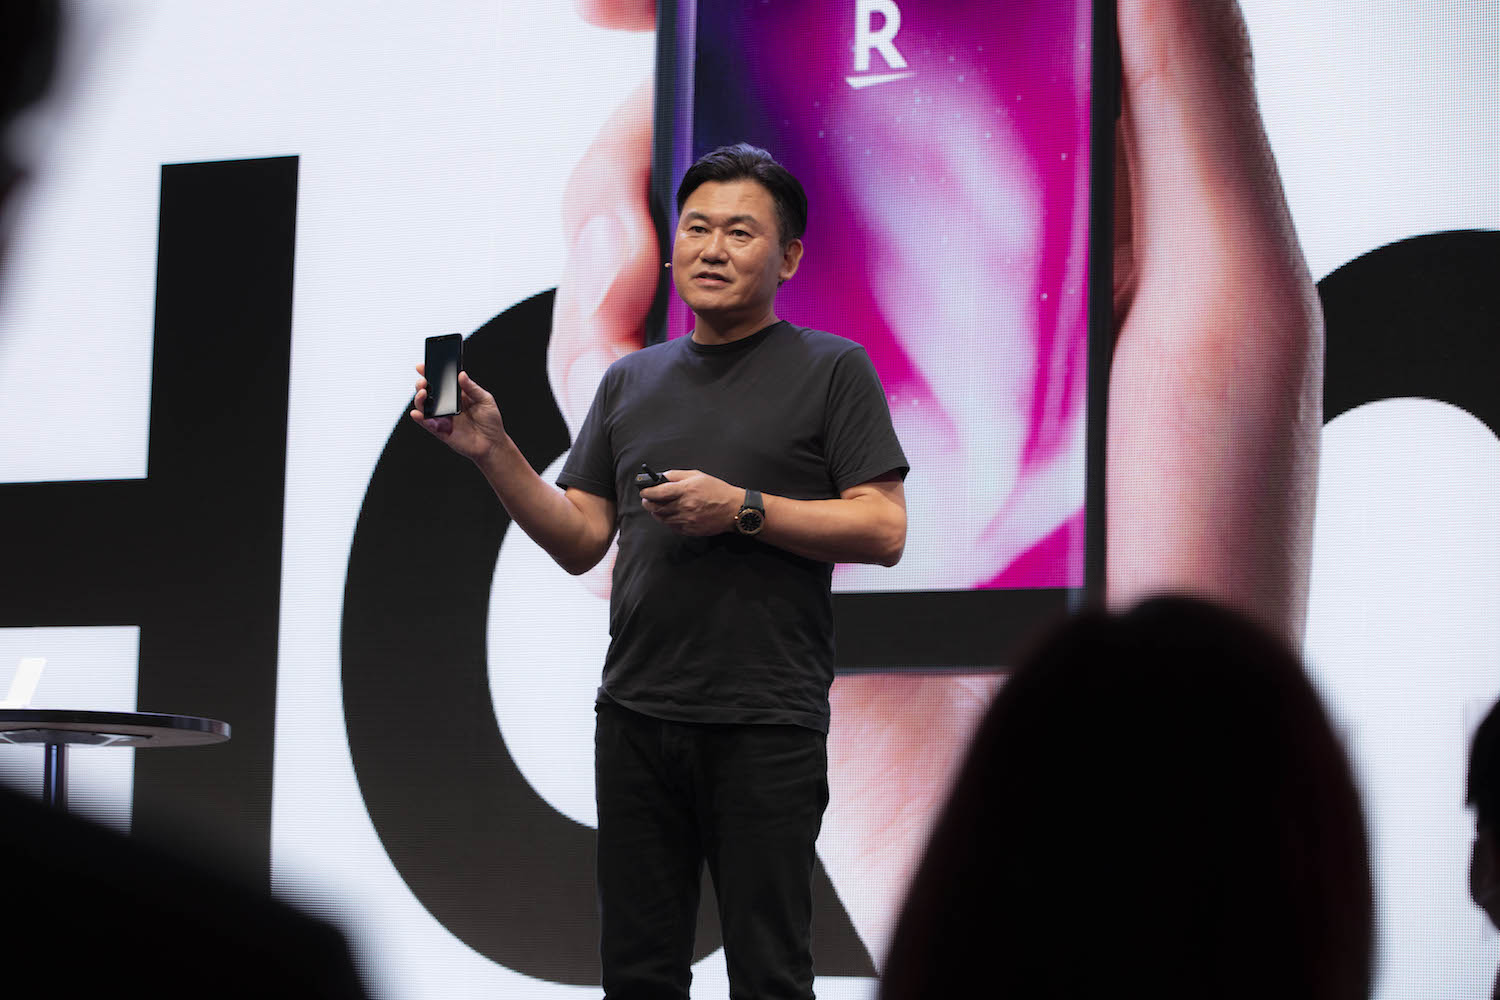 From inspecting base stations with drones to embracing world-first technology, here's how Rakuten Mobile has disrupted the mobile industry in 2020.